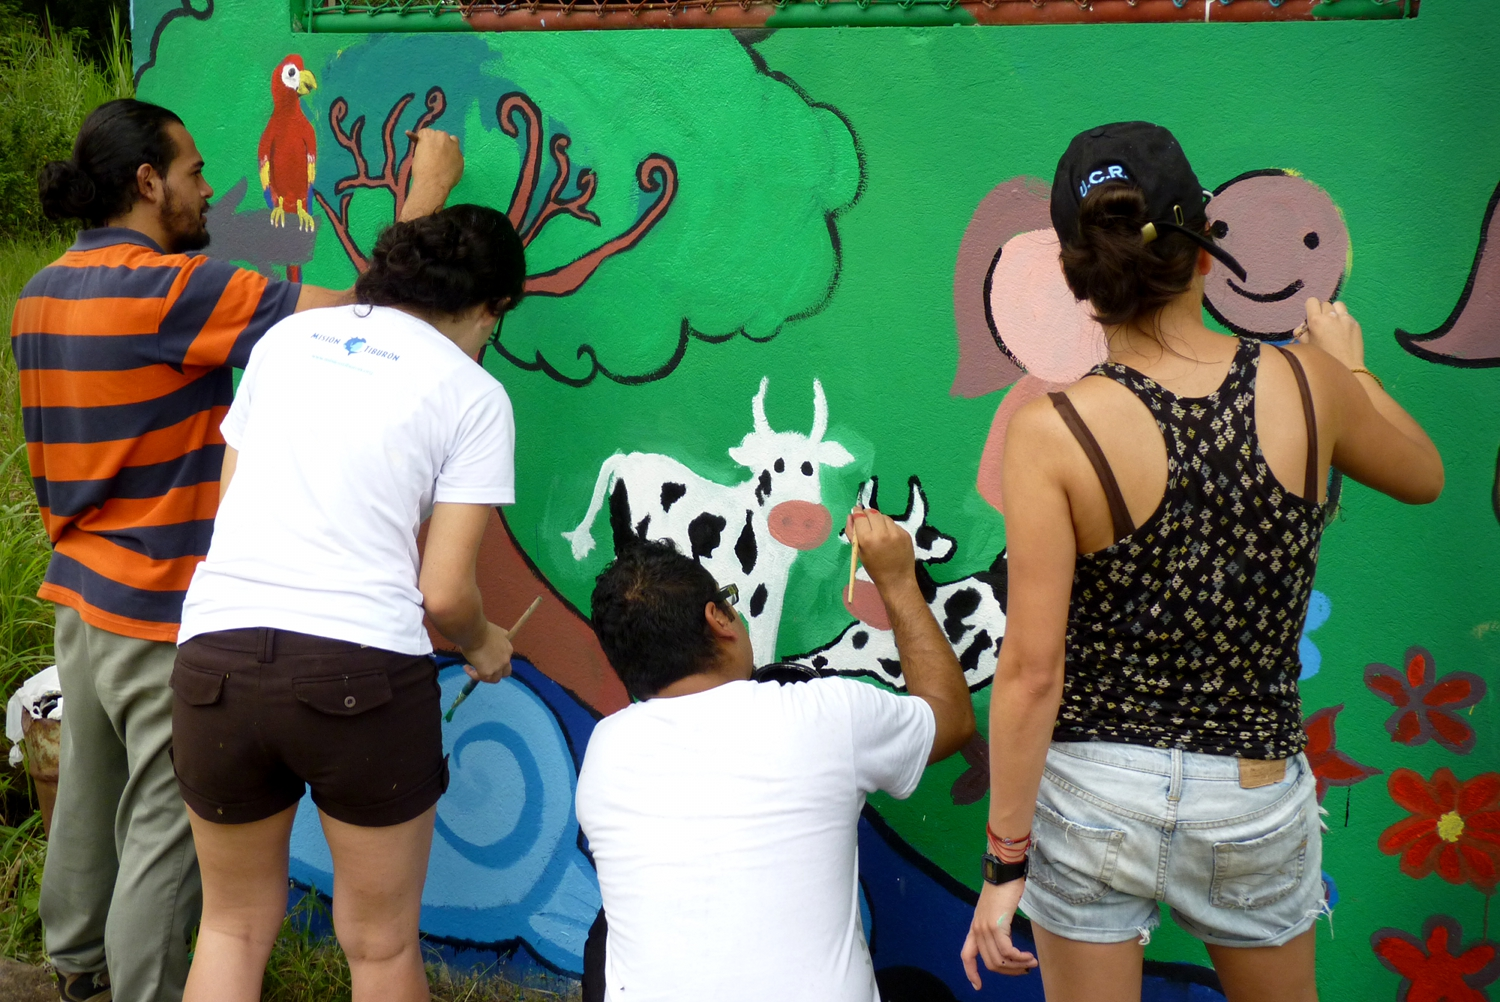 You are browsing images from the article: Mural del Da del Ambiente 